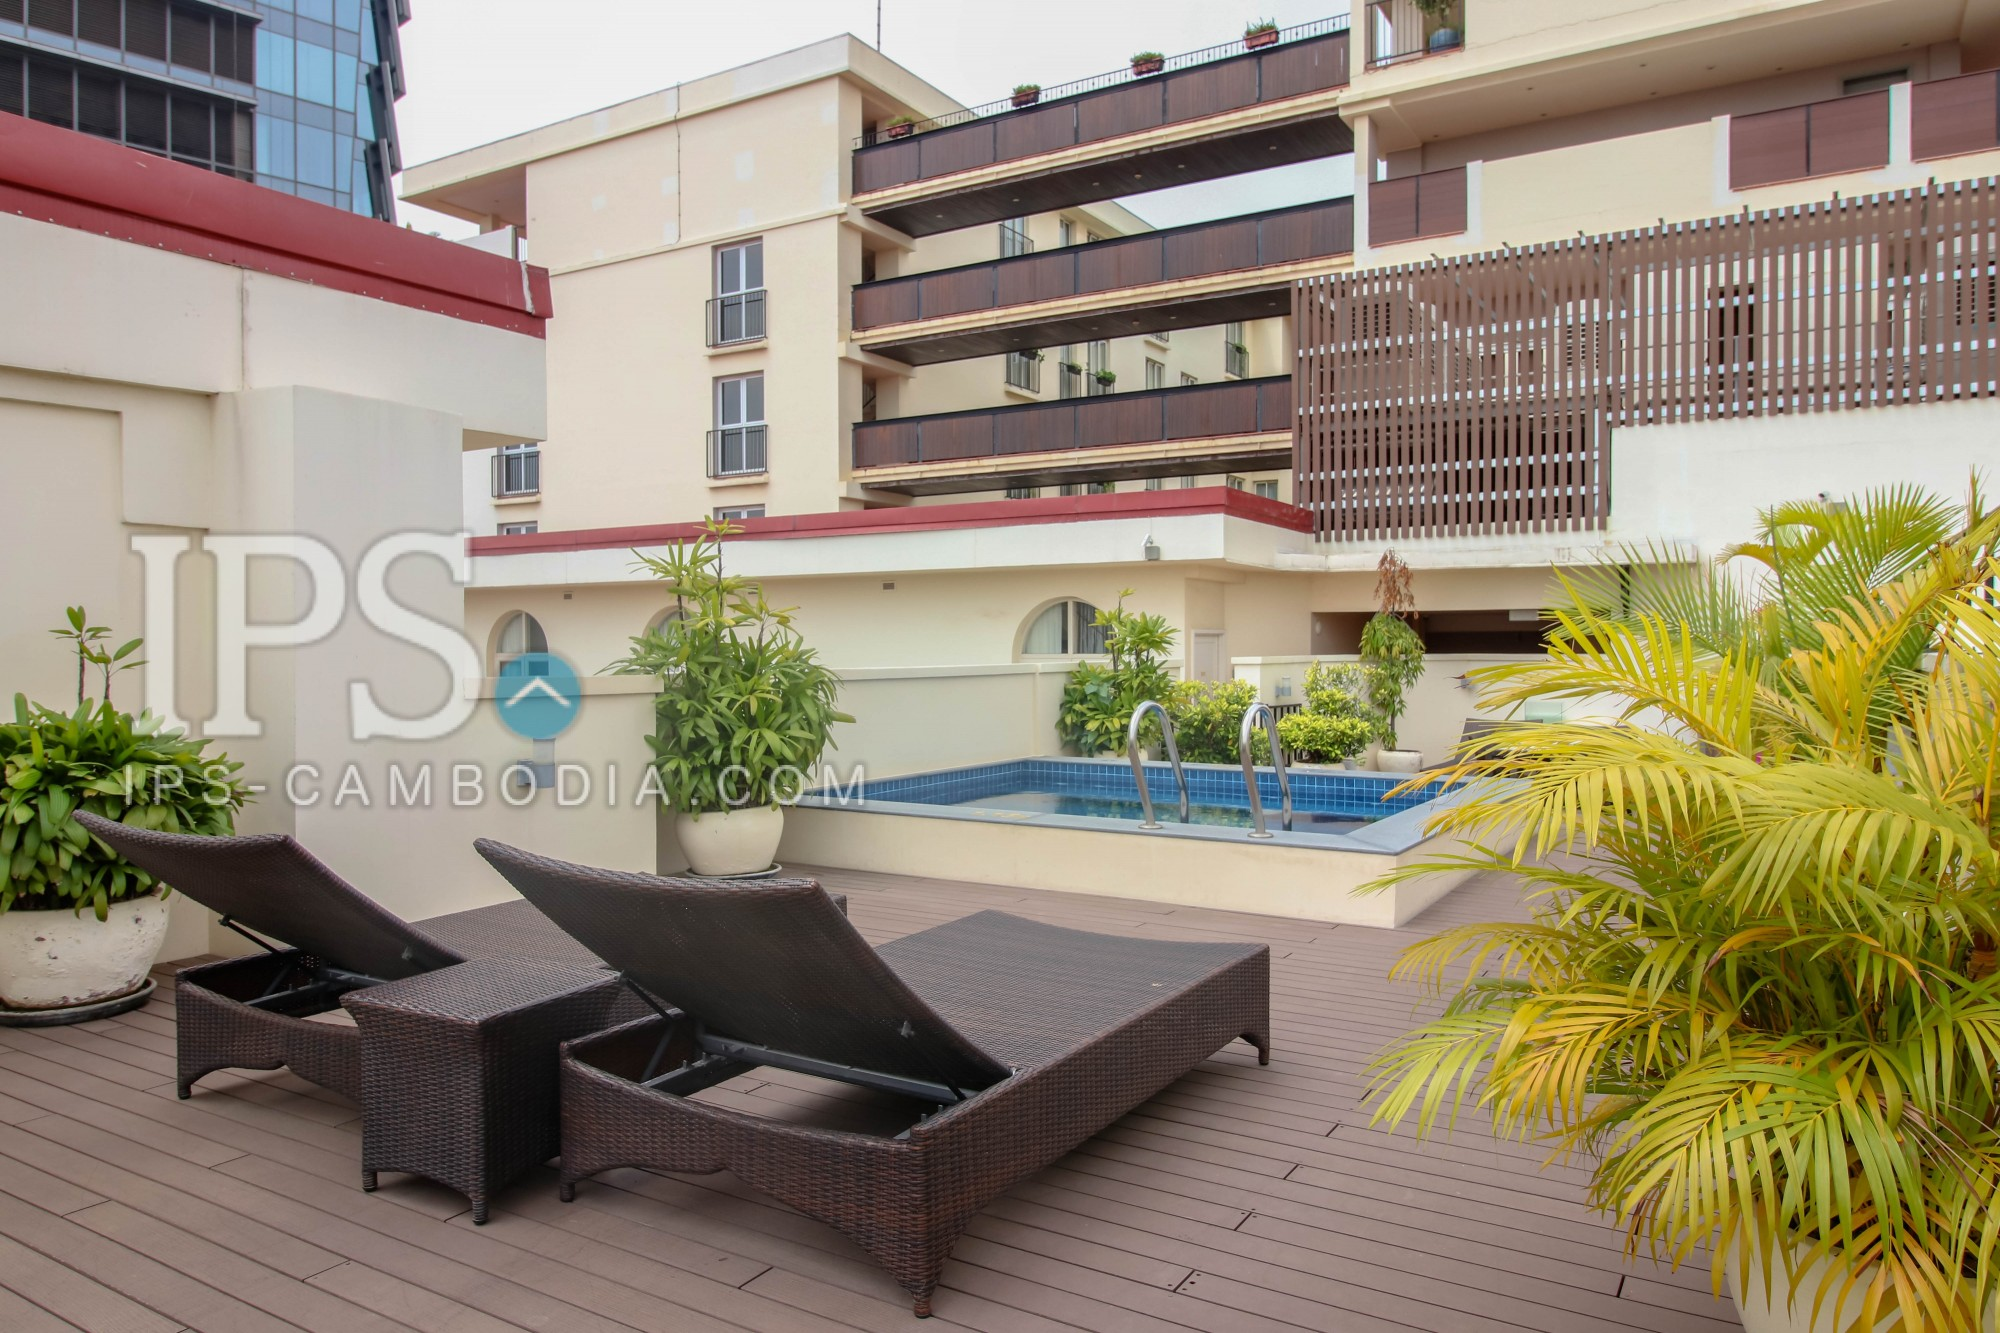 1 Bedroom Serviced Apartment For Rent - Wat Phnom, Phnom Penh